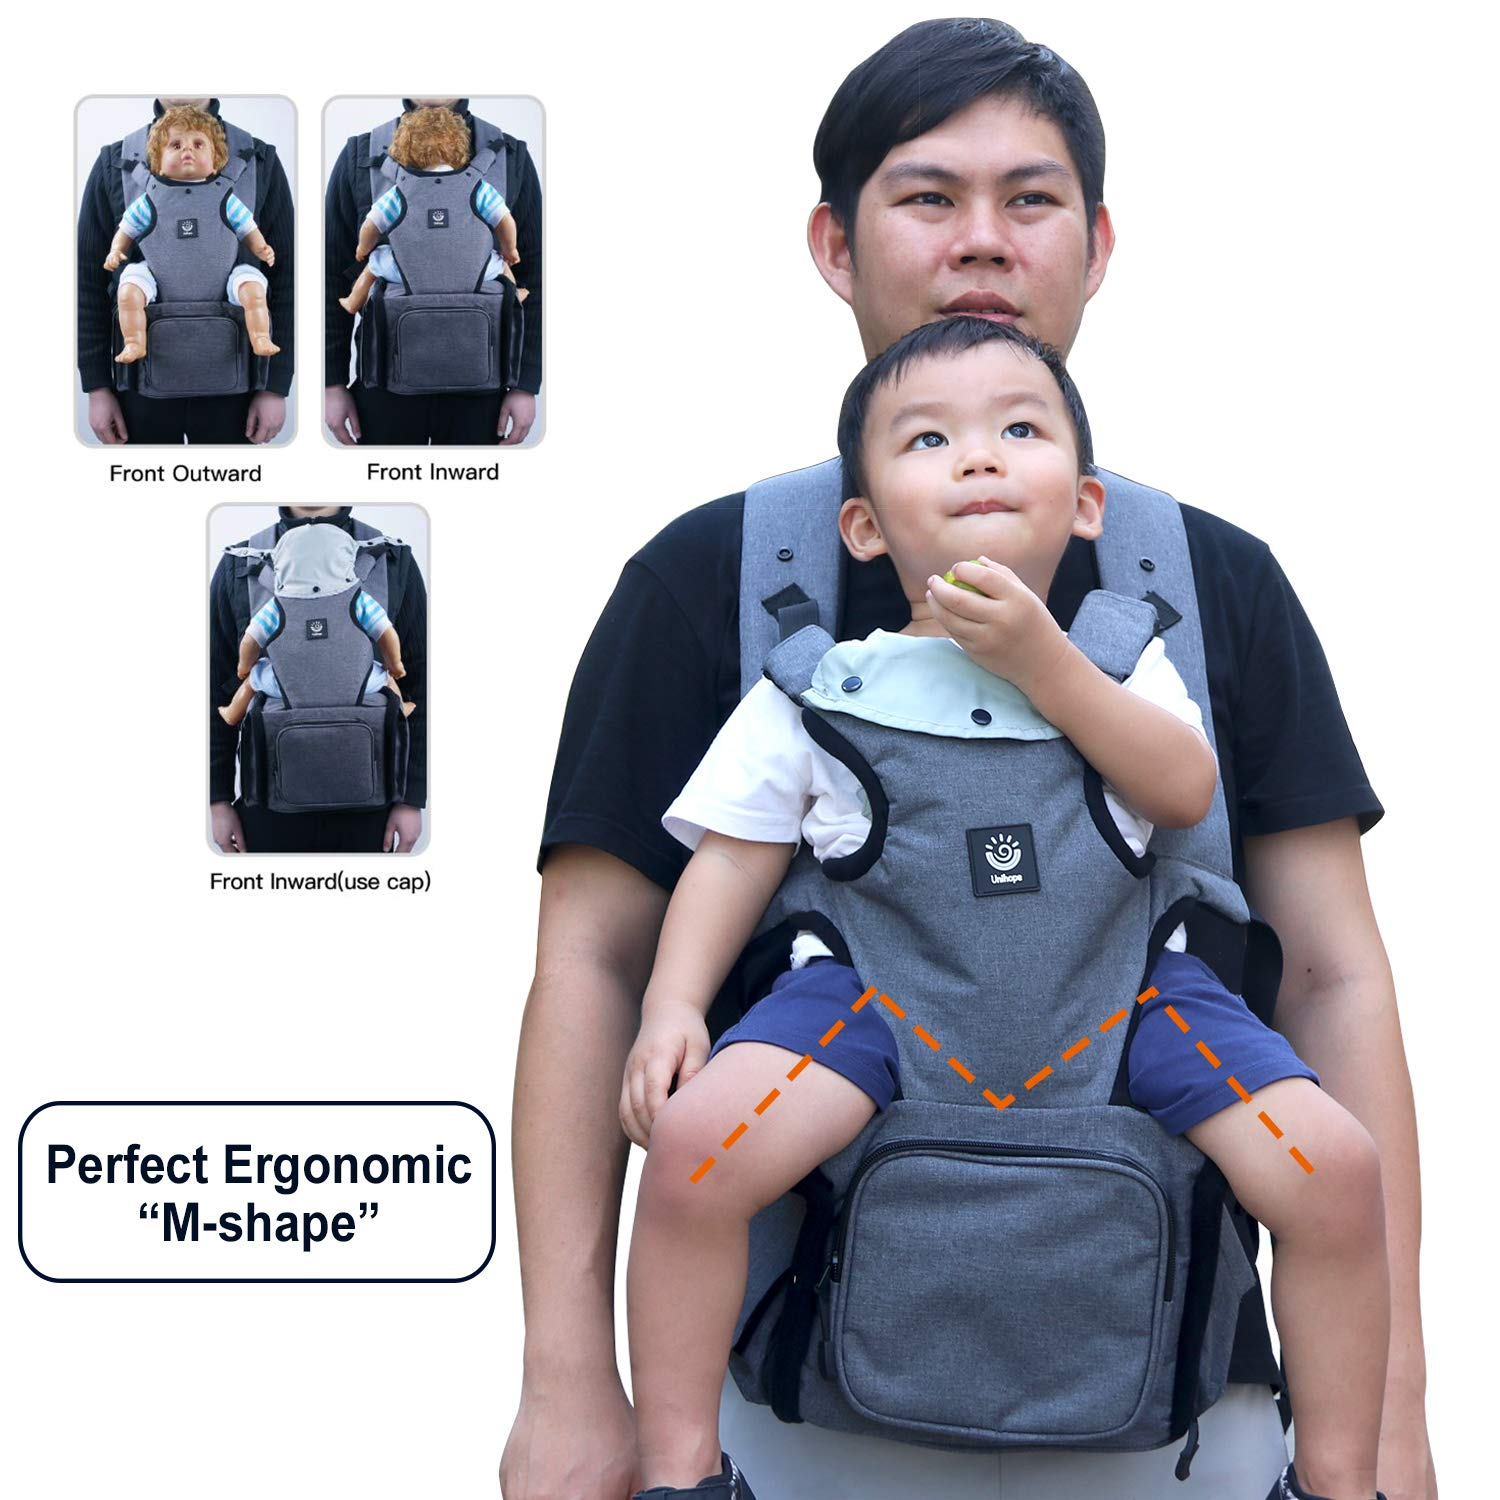 Ergonomic Baby Sling Carrier Bag - Baby Wrap from Newborn to Toddler Baby Carrier Backpack Baby Wrap Carrier Hip seat Baby Carrier for Infants up to 44lbs/20kg Suitable for Both Moms and Dads Yushi